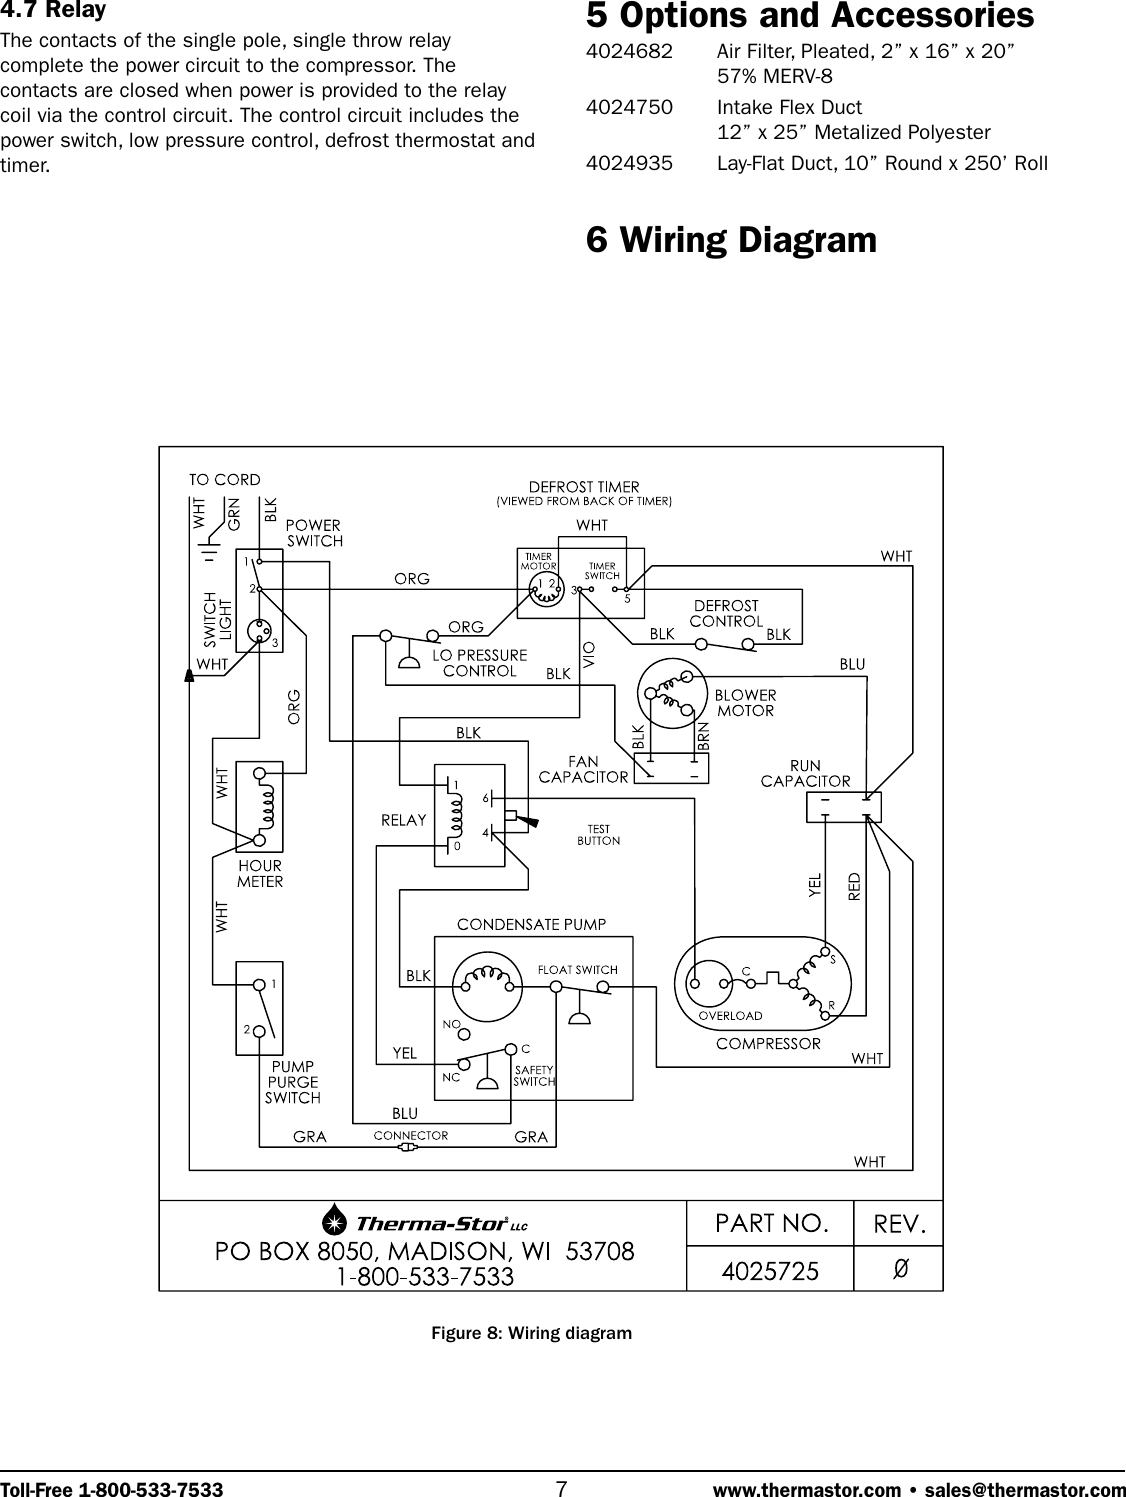 Therma Stor Products Group Phoenix 200 Ht Users Manual Wiring Diagram Page 7 Of 9